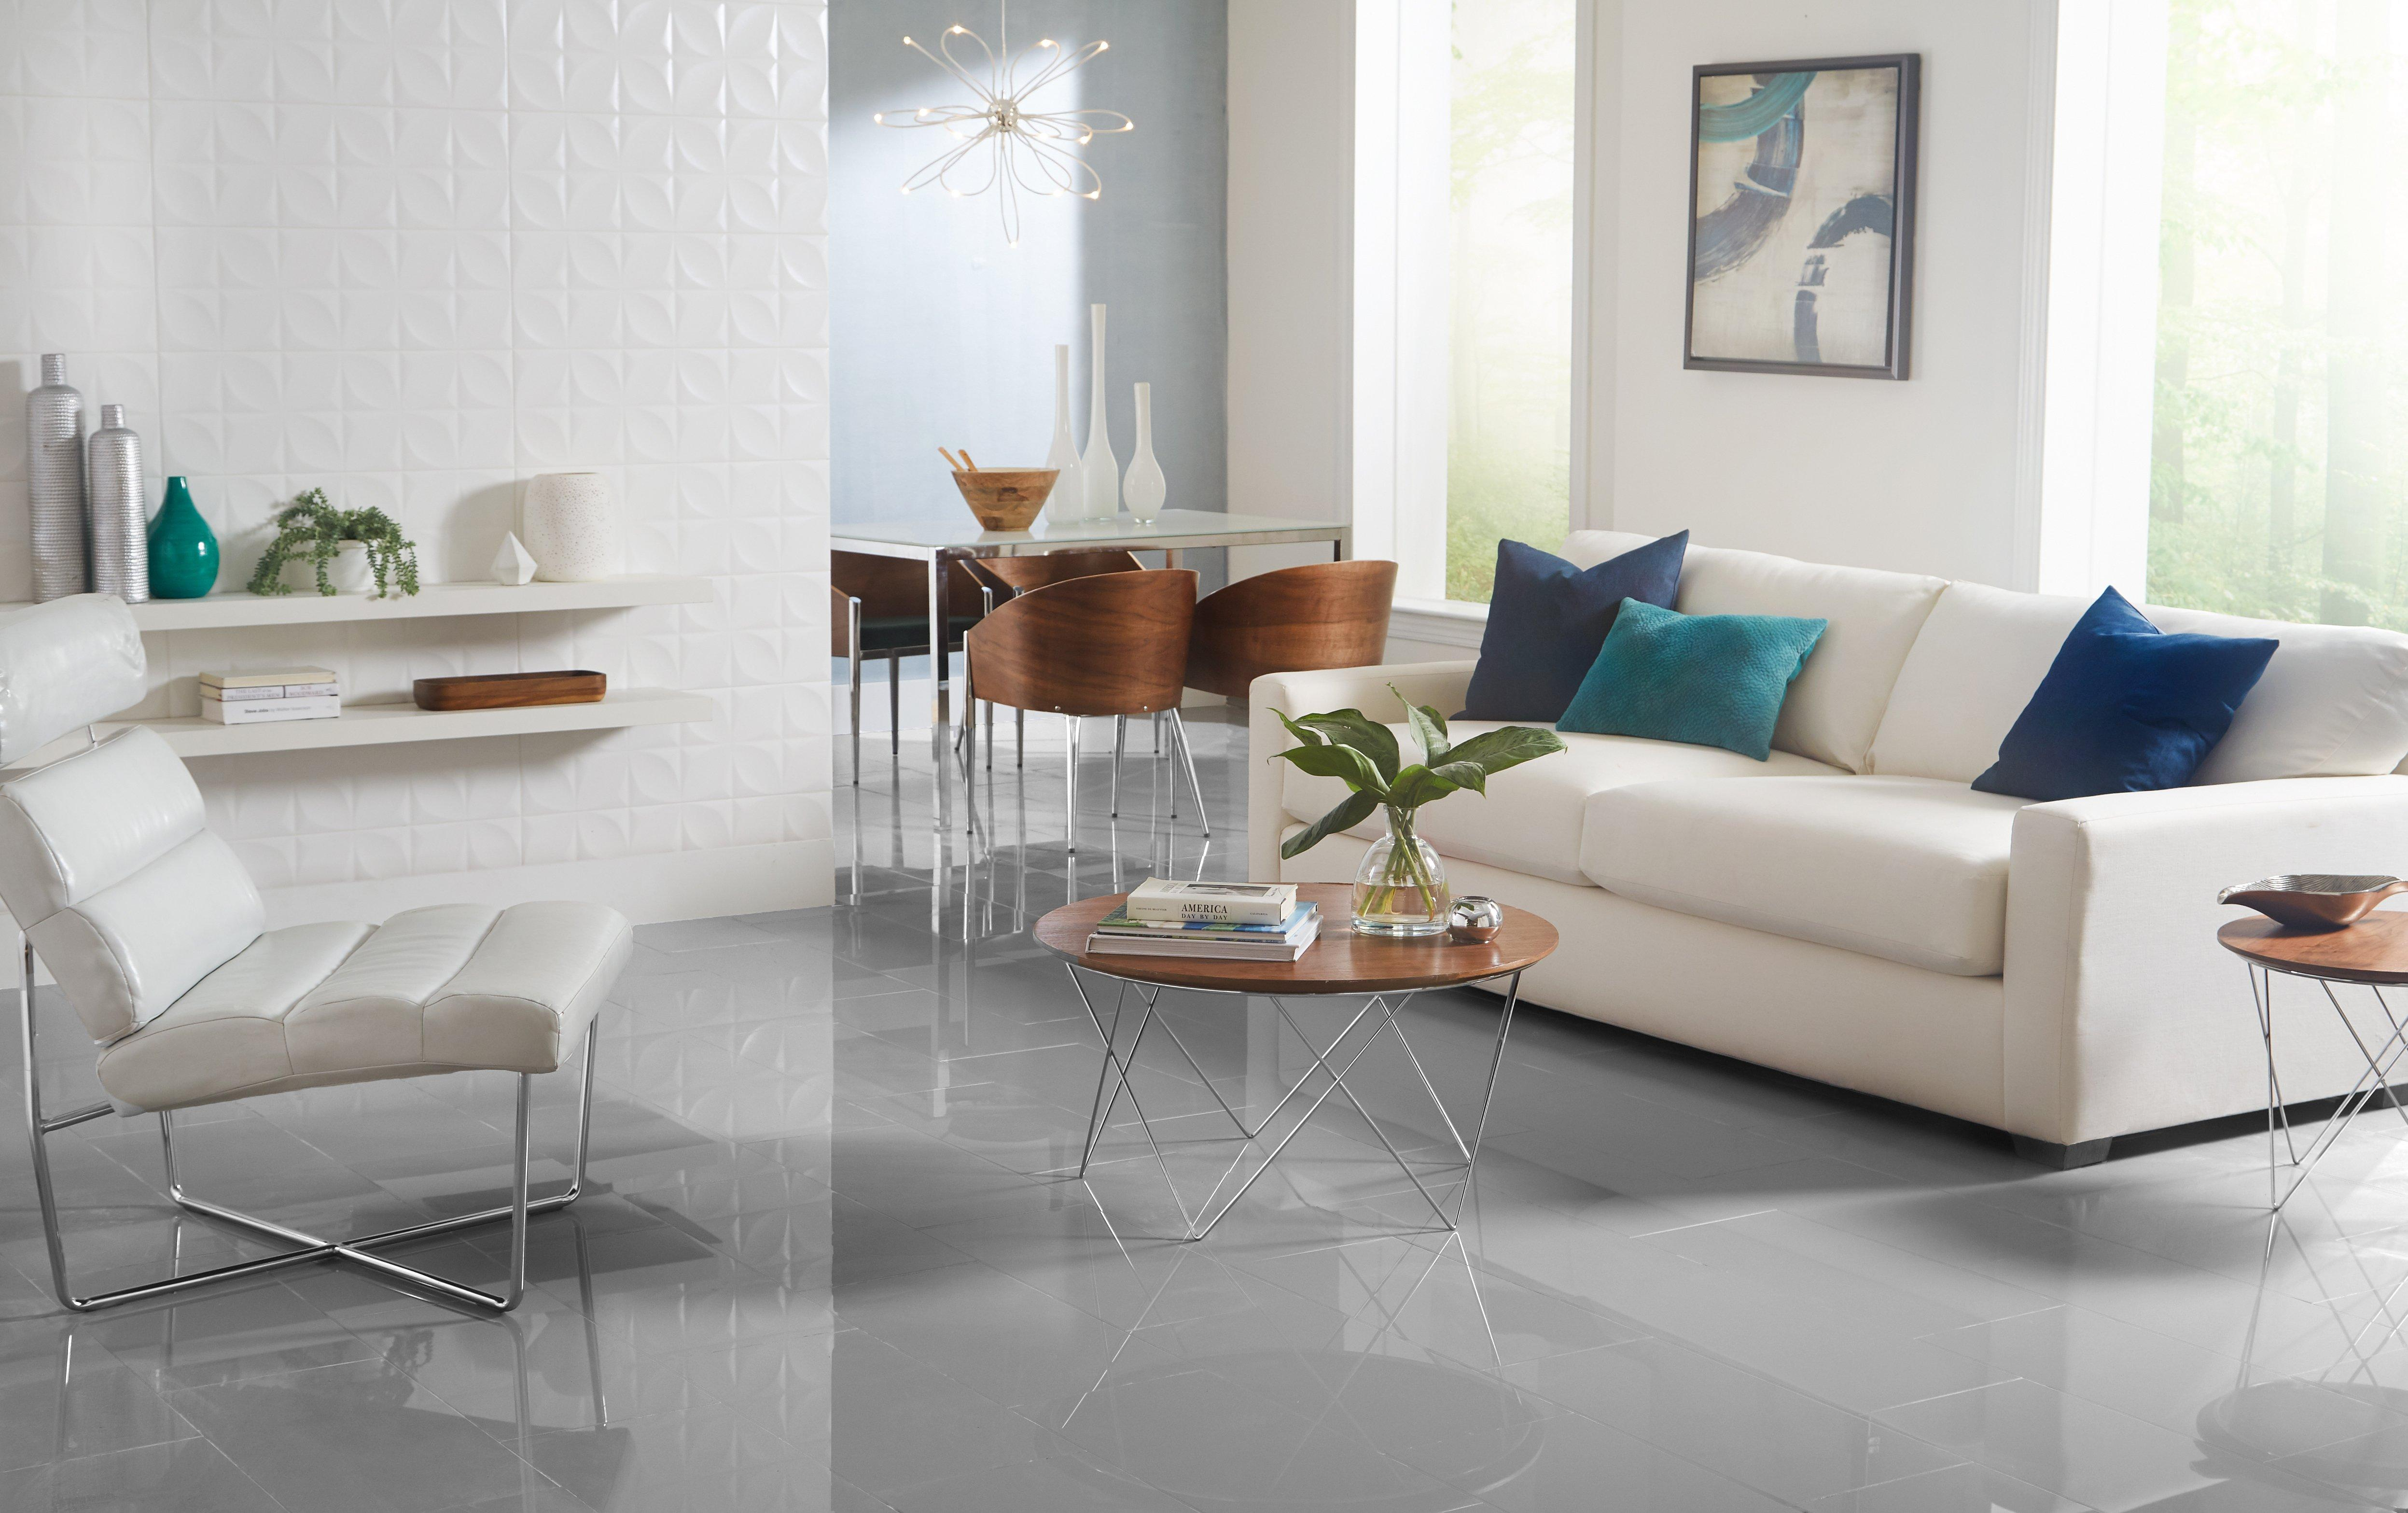 tile floor designs for living rooms toy storage ideas small room gallery decor 1 classic gray porcelain polar white ceramic wall